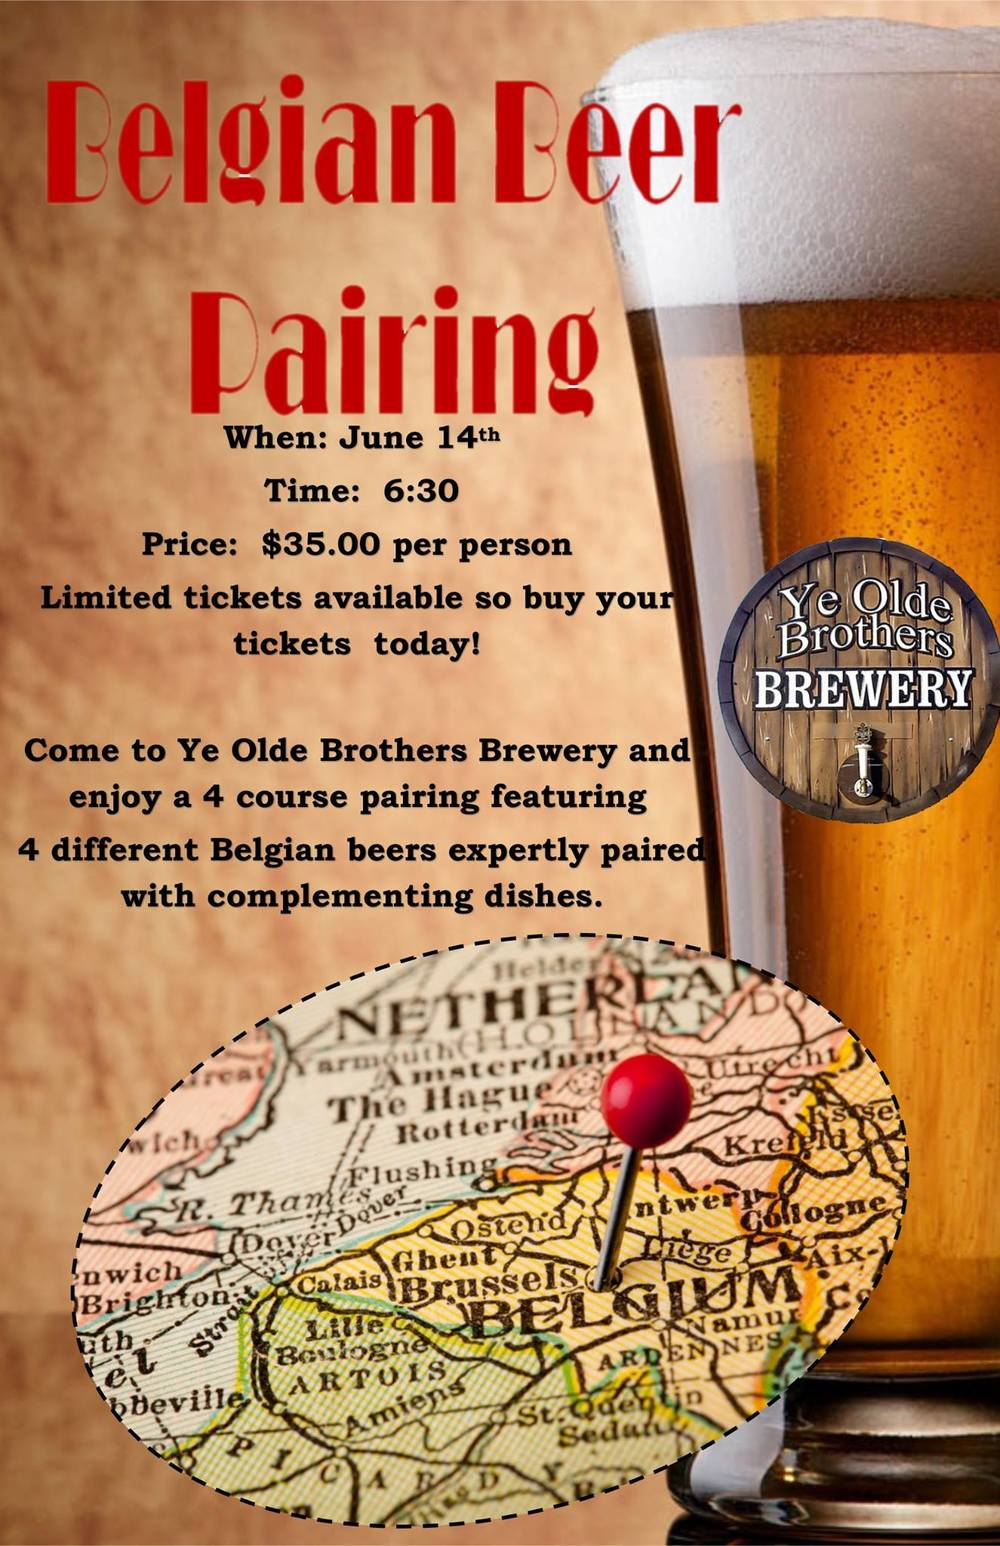 Official YOBB Belgian Beer Pairing Event Flyer (Courtesy of YOBB)